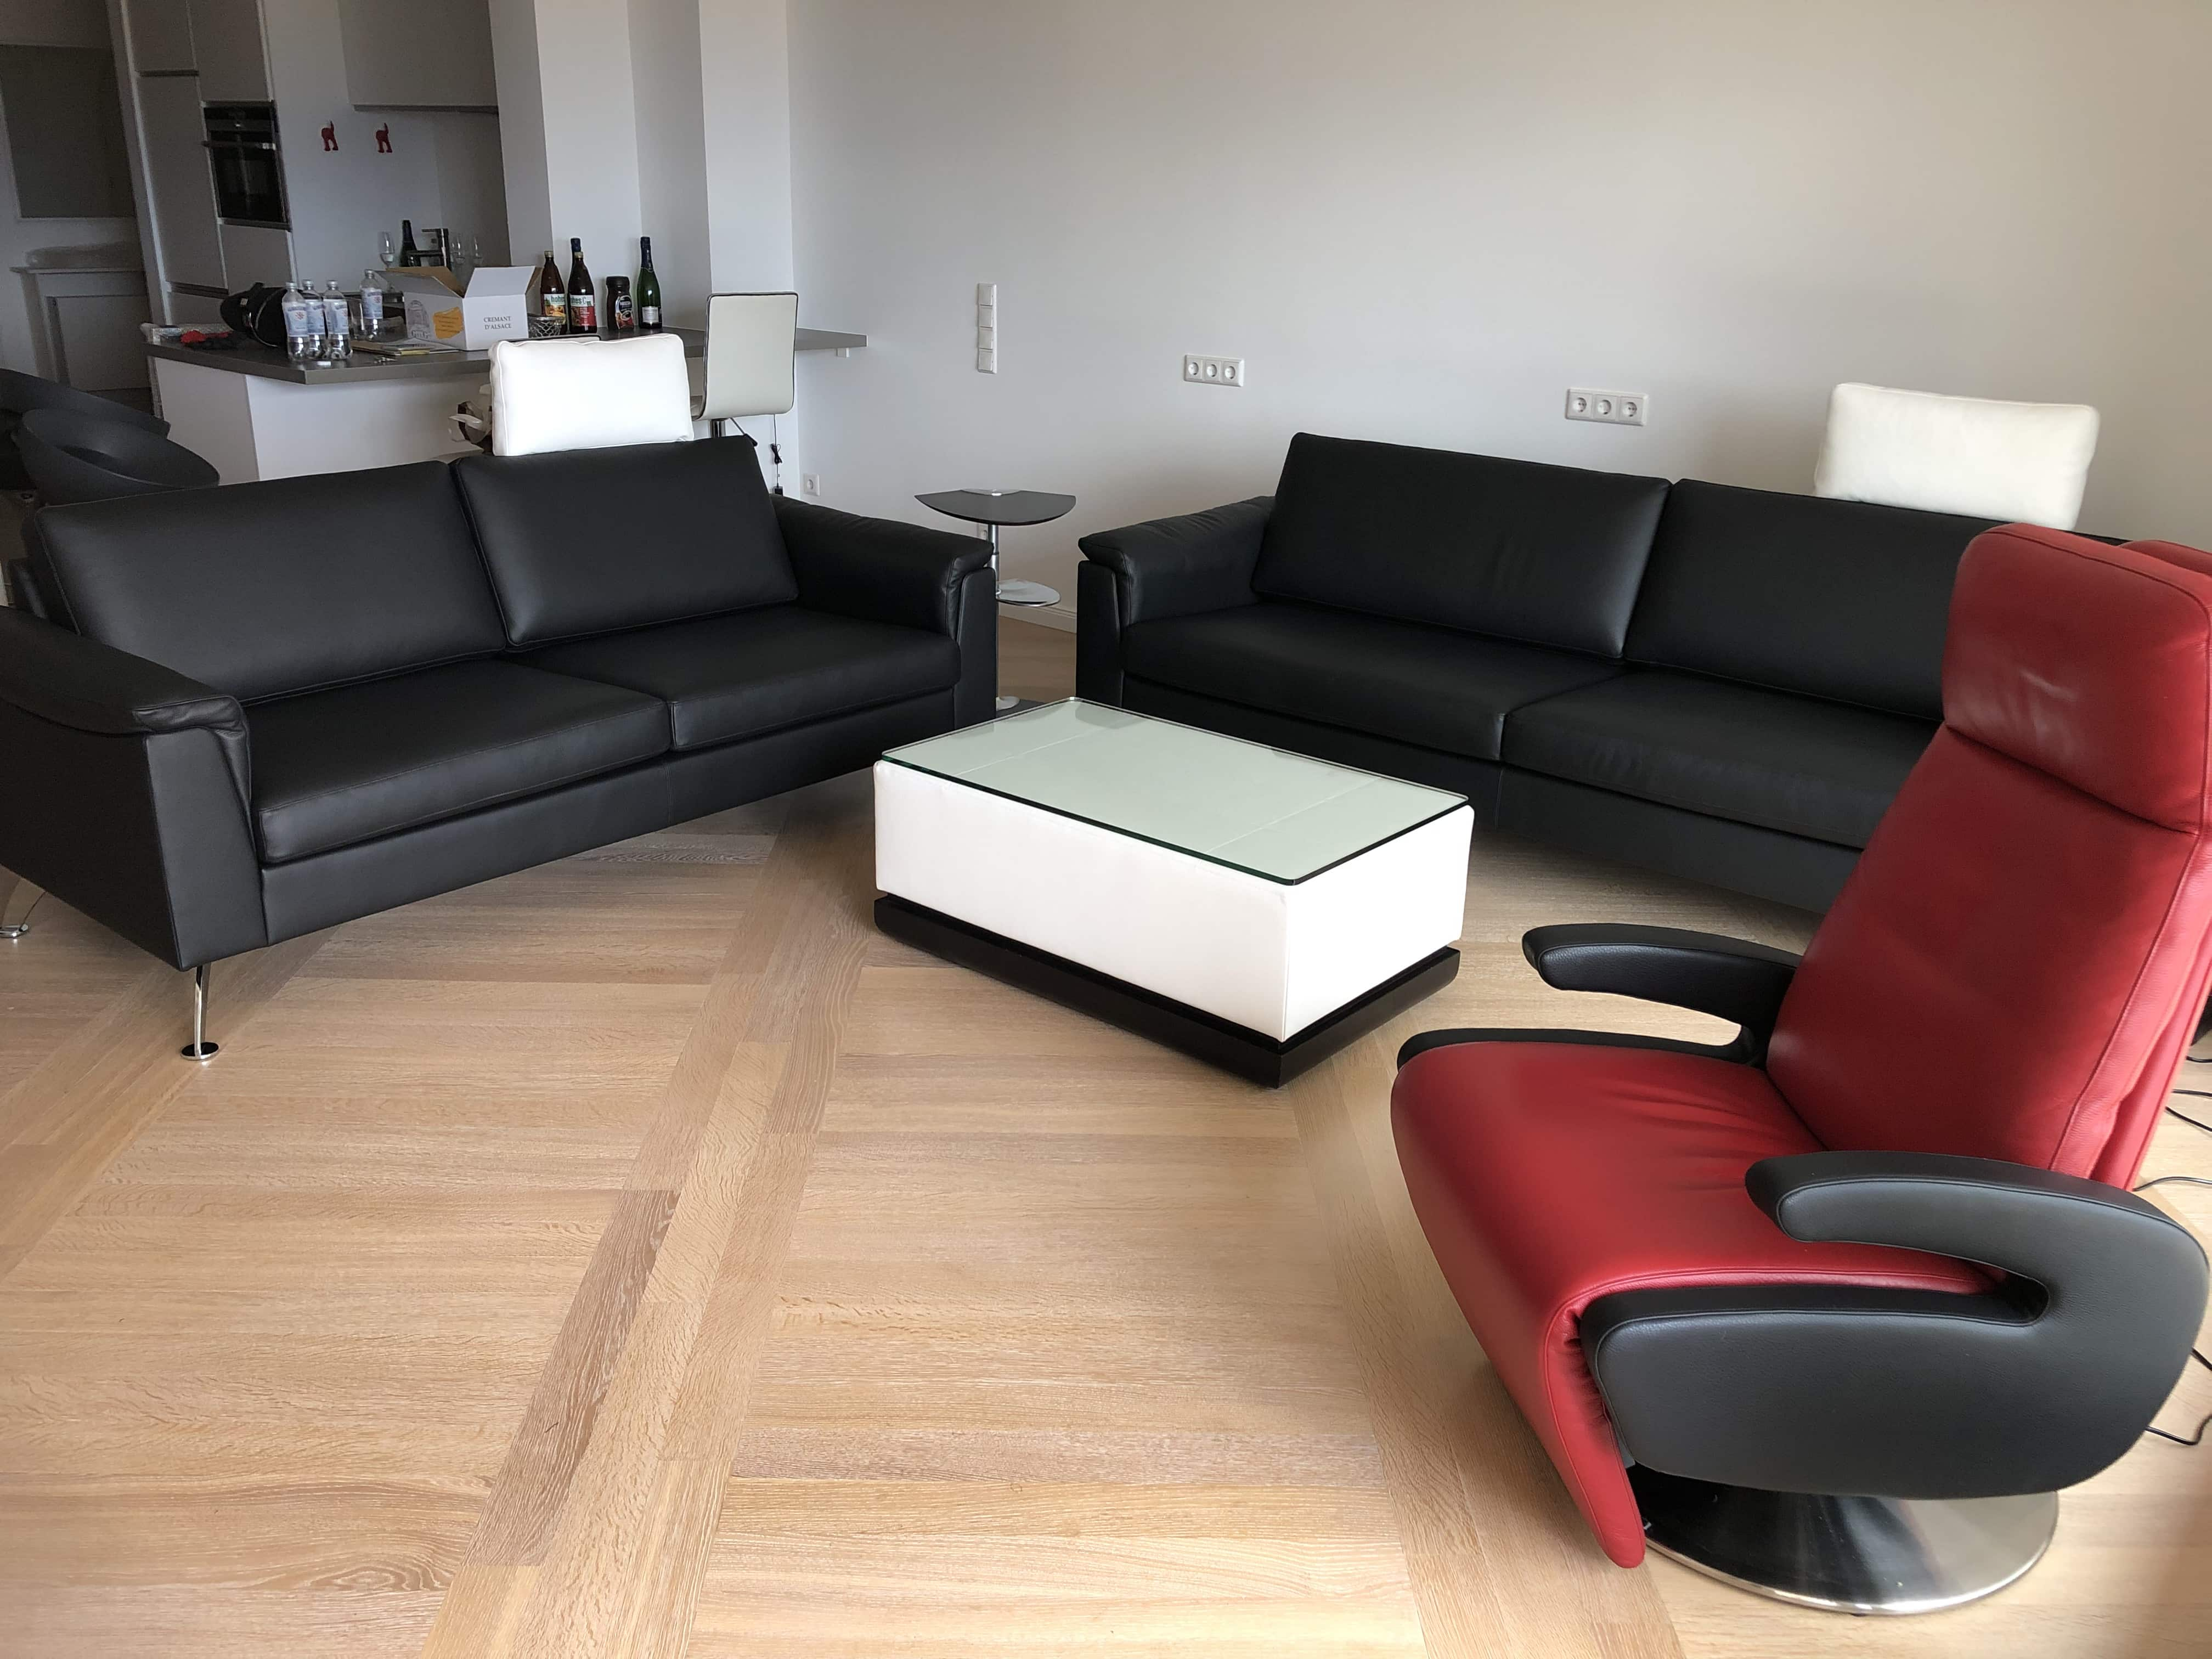 Sofa Timeless + Sessel Nido + Couchtisch  Huevo